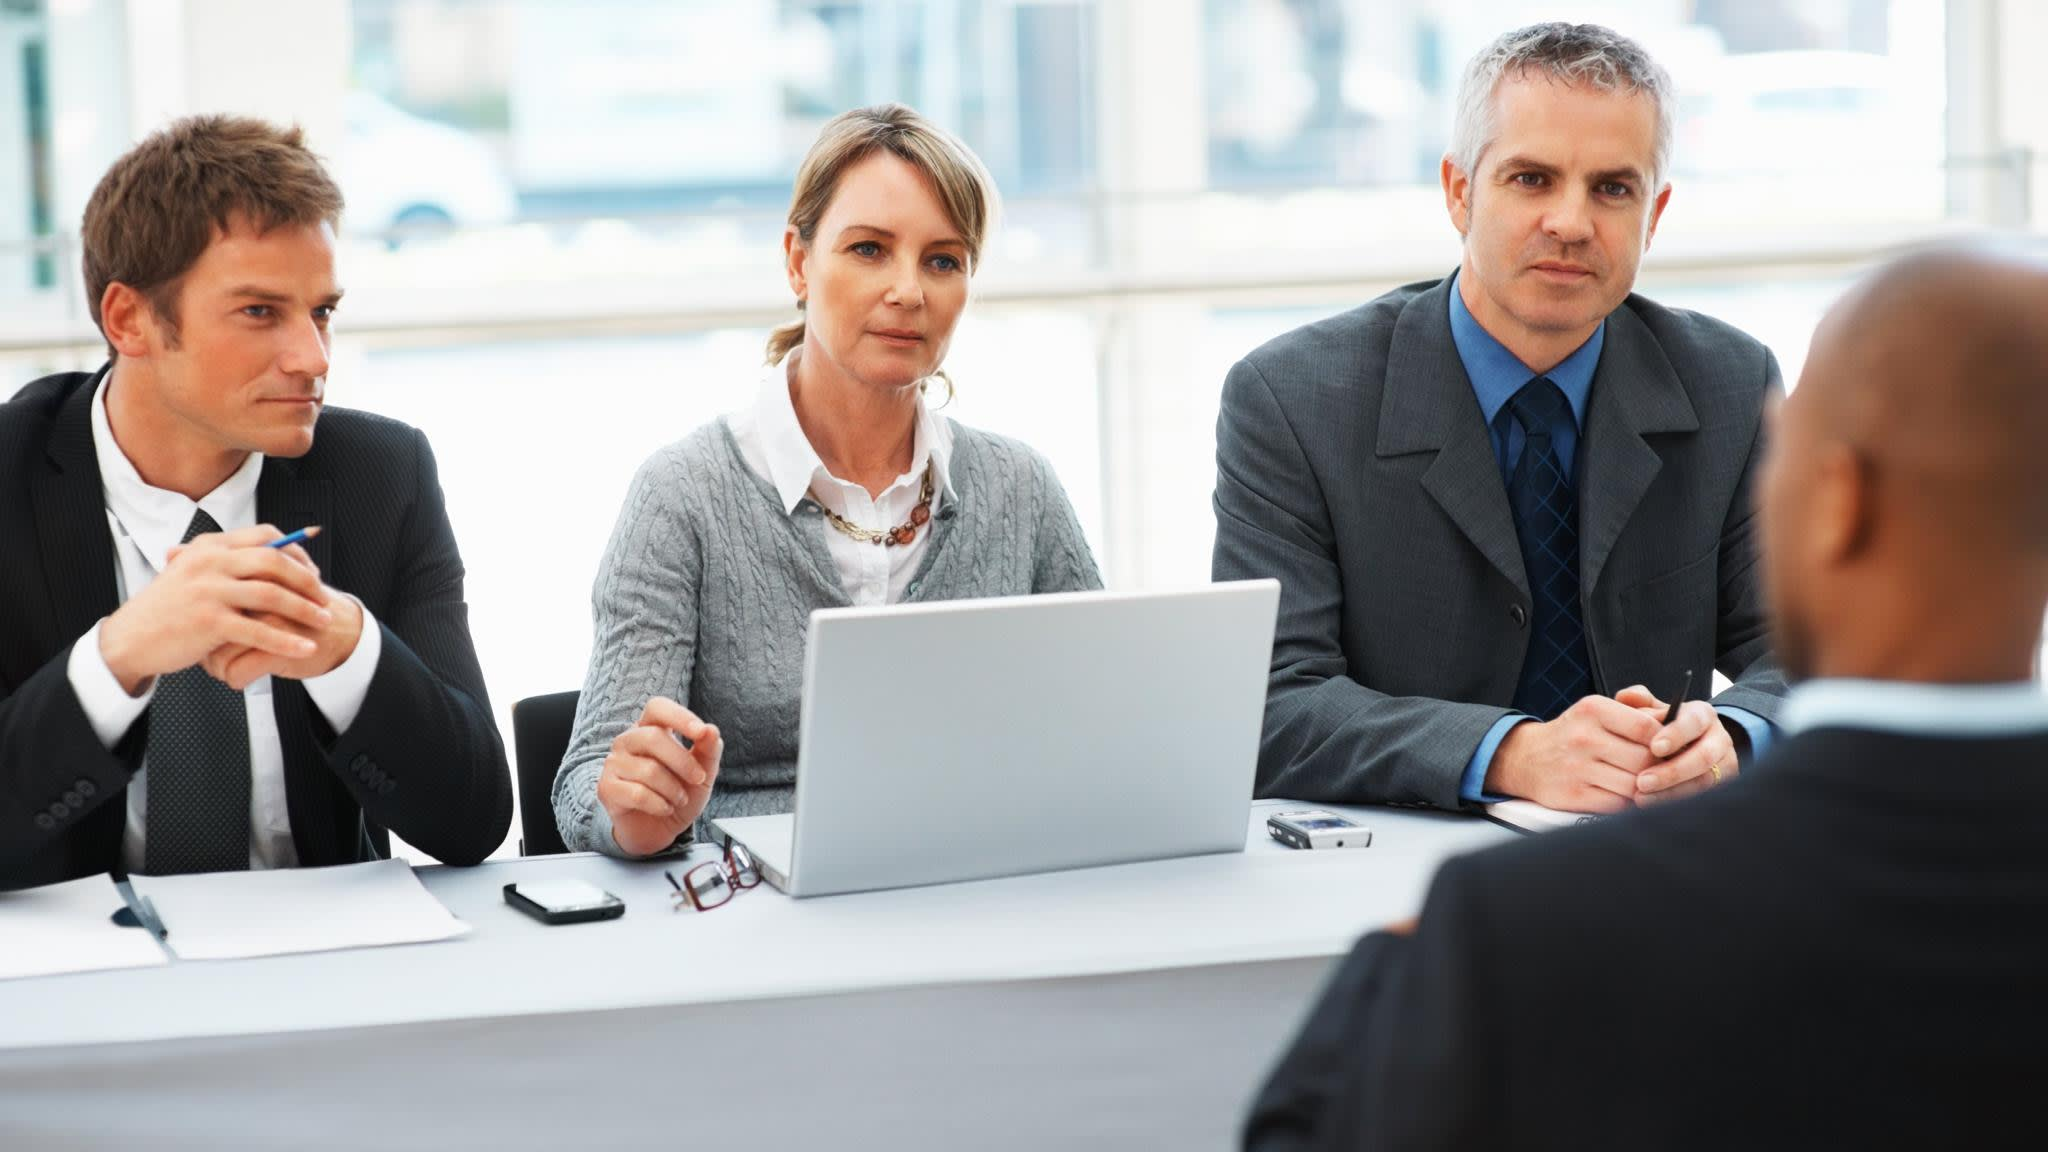 MBA Careers: Tough interview questions | Financial Times